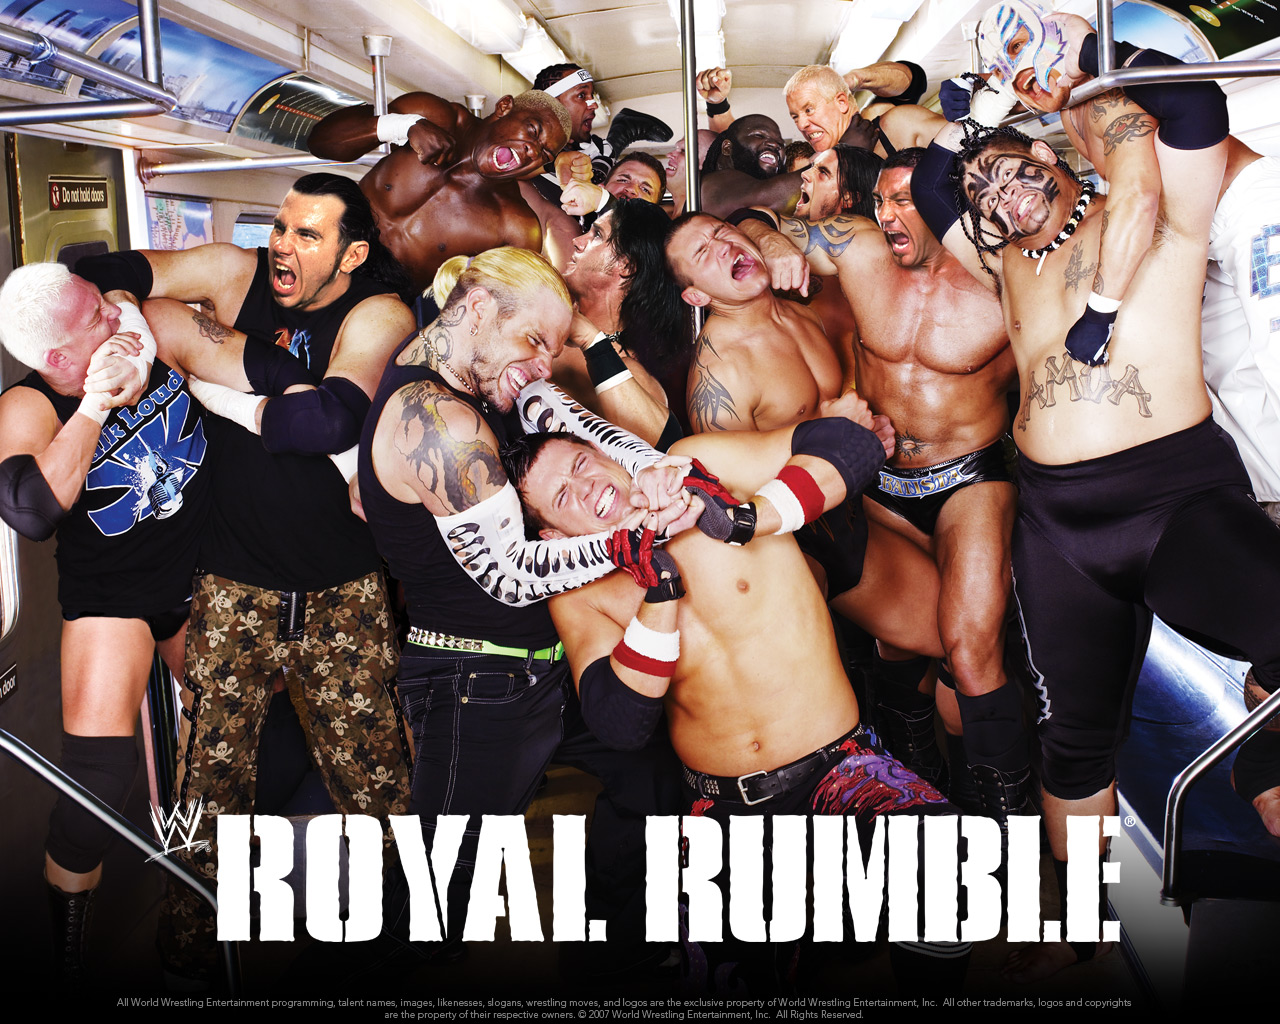 Concurs Rew 2 Wwe-royal-rumble-753590l